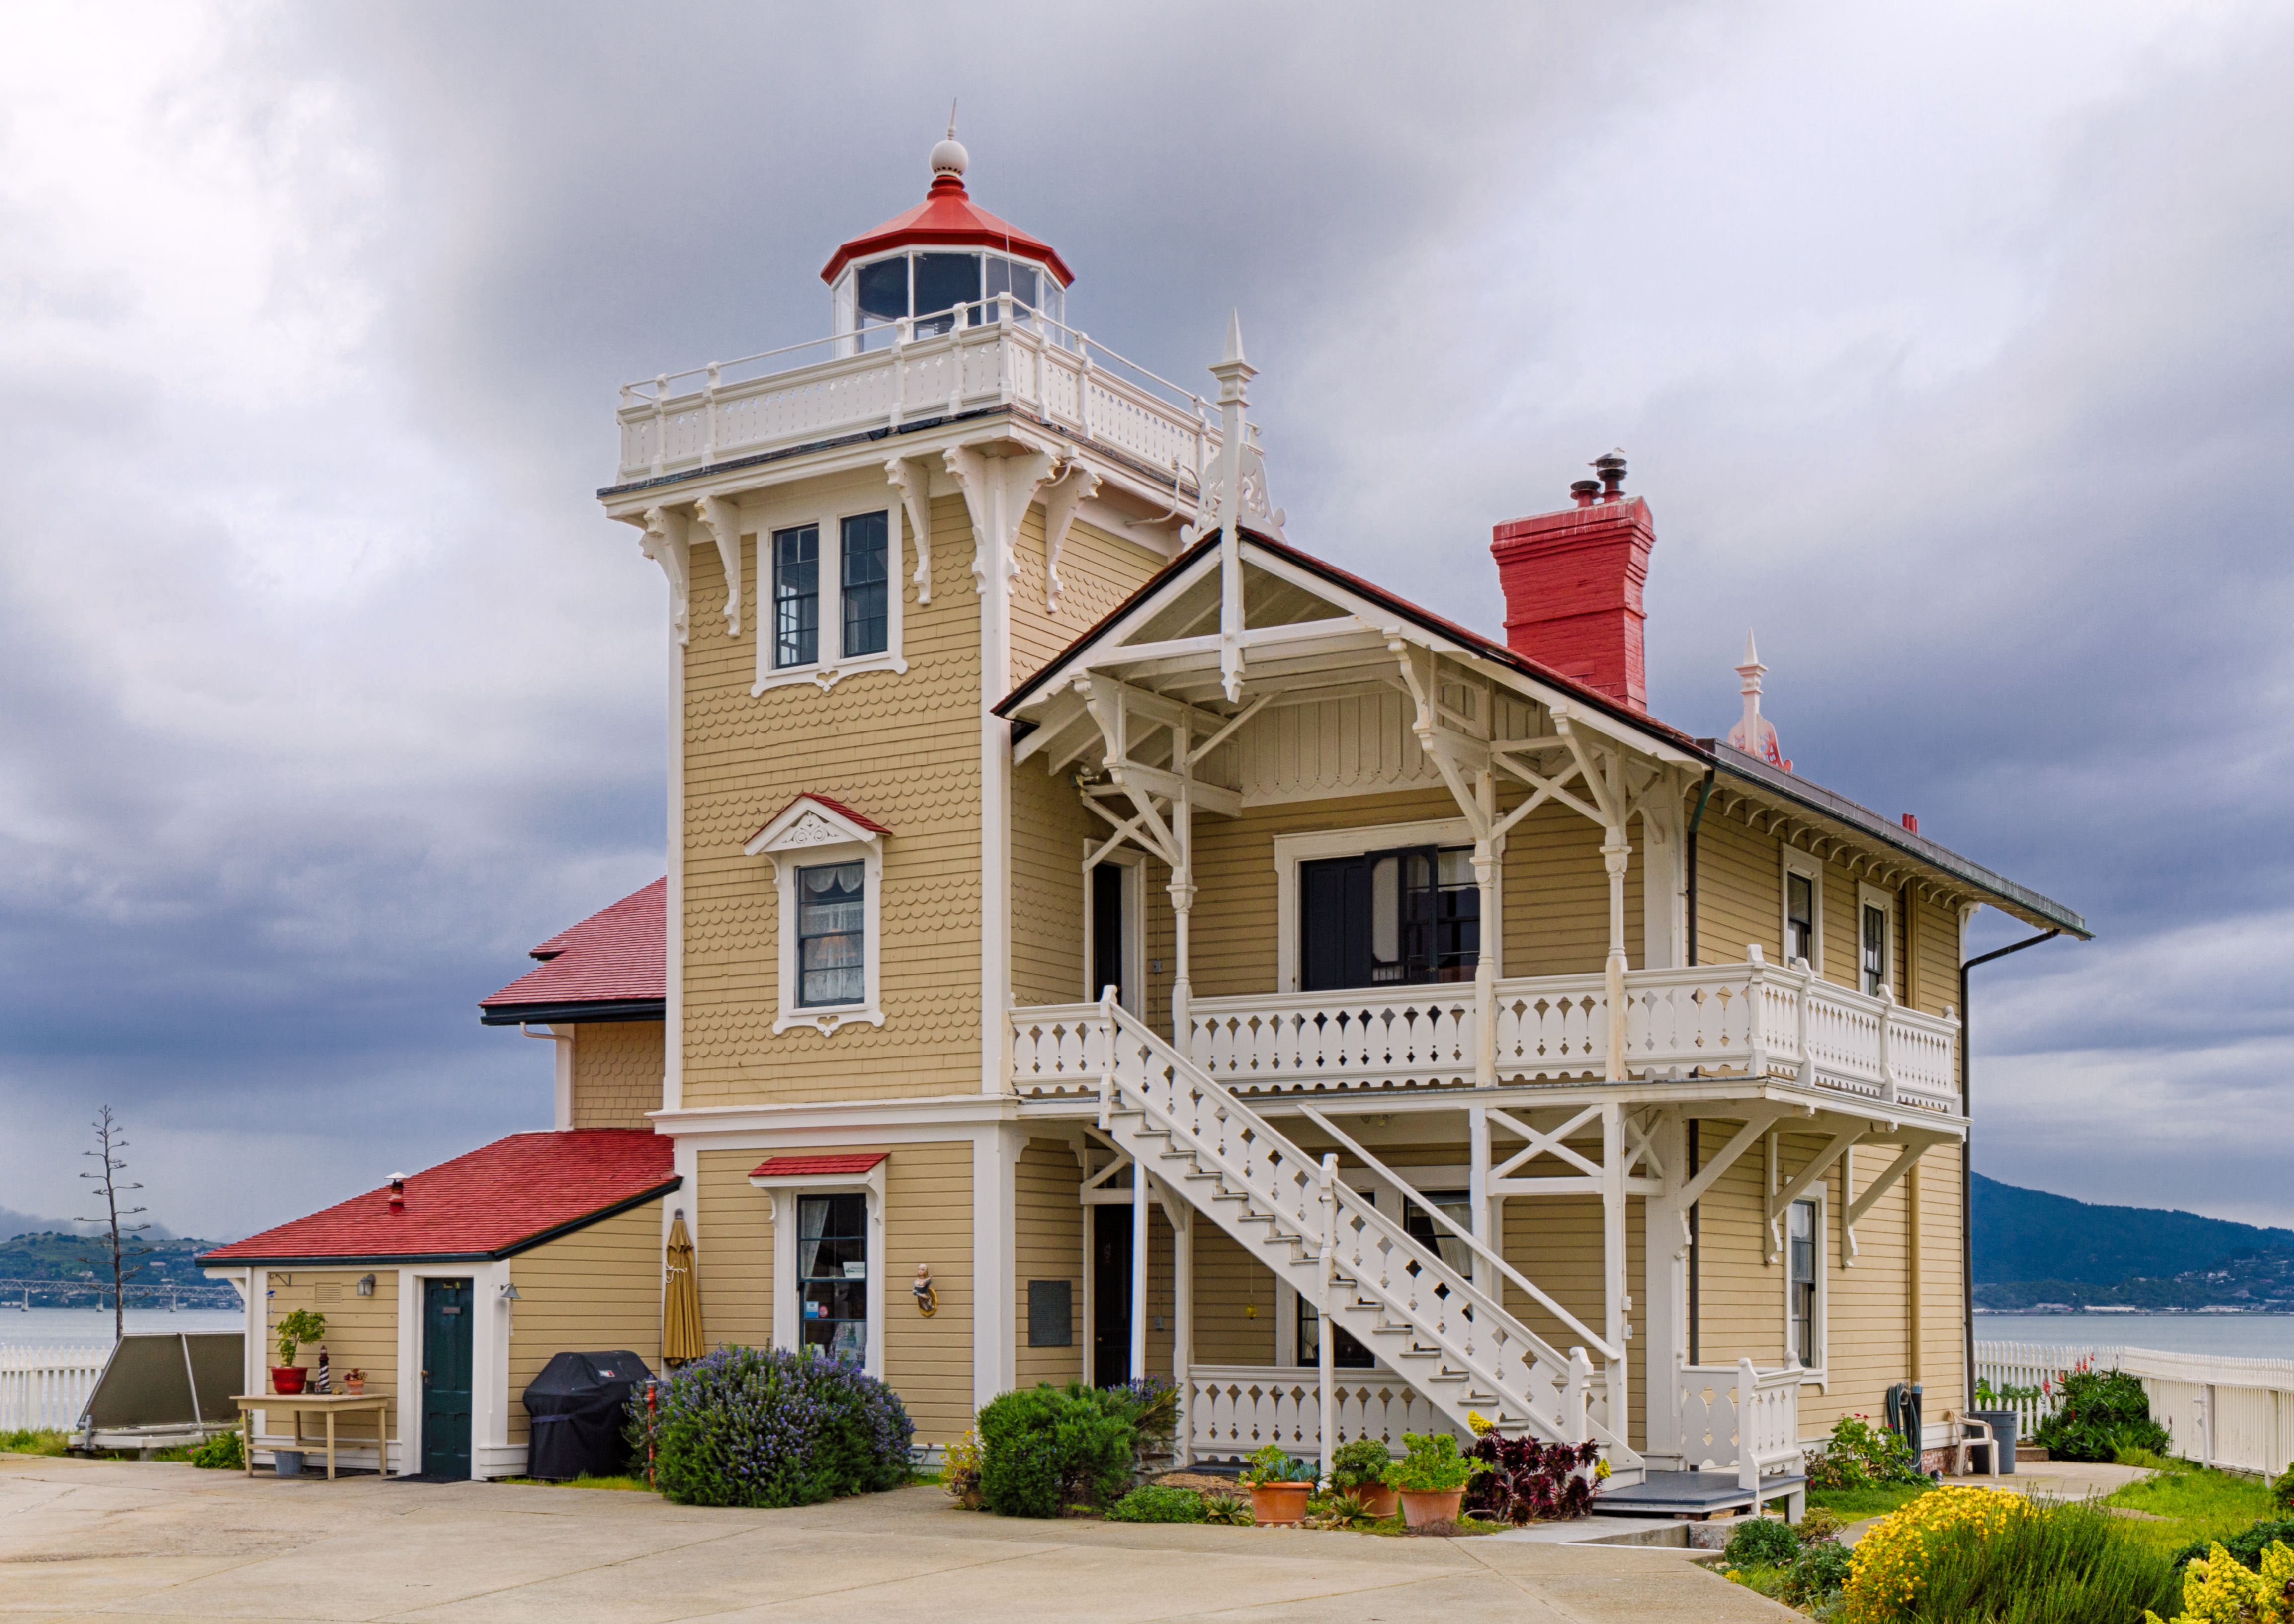 They'll Pay You $140K To Live In This Victorian On a Remote Island